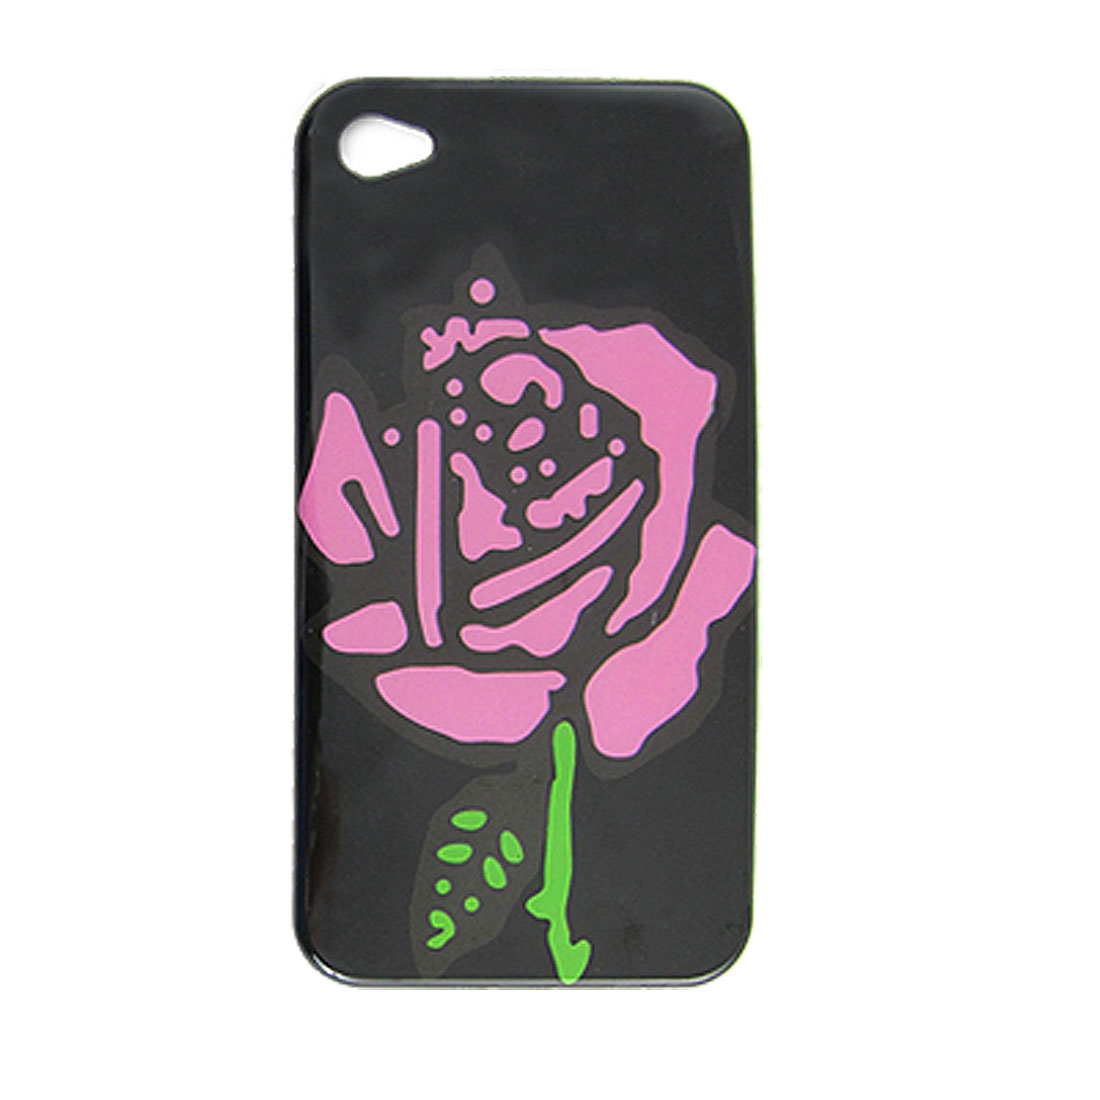 Floral Pattern Hard Plastic IMD Back Case for iPhone 4 4G